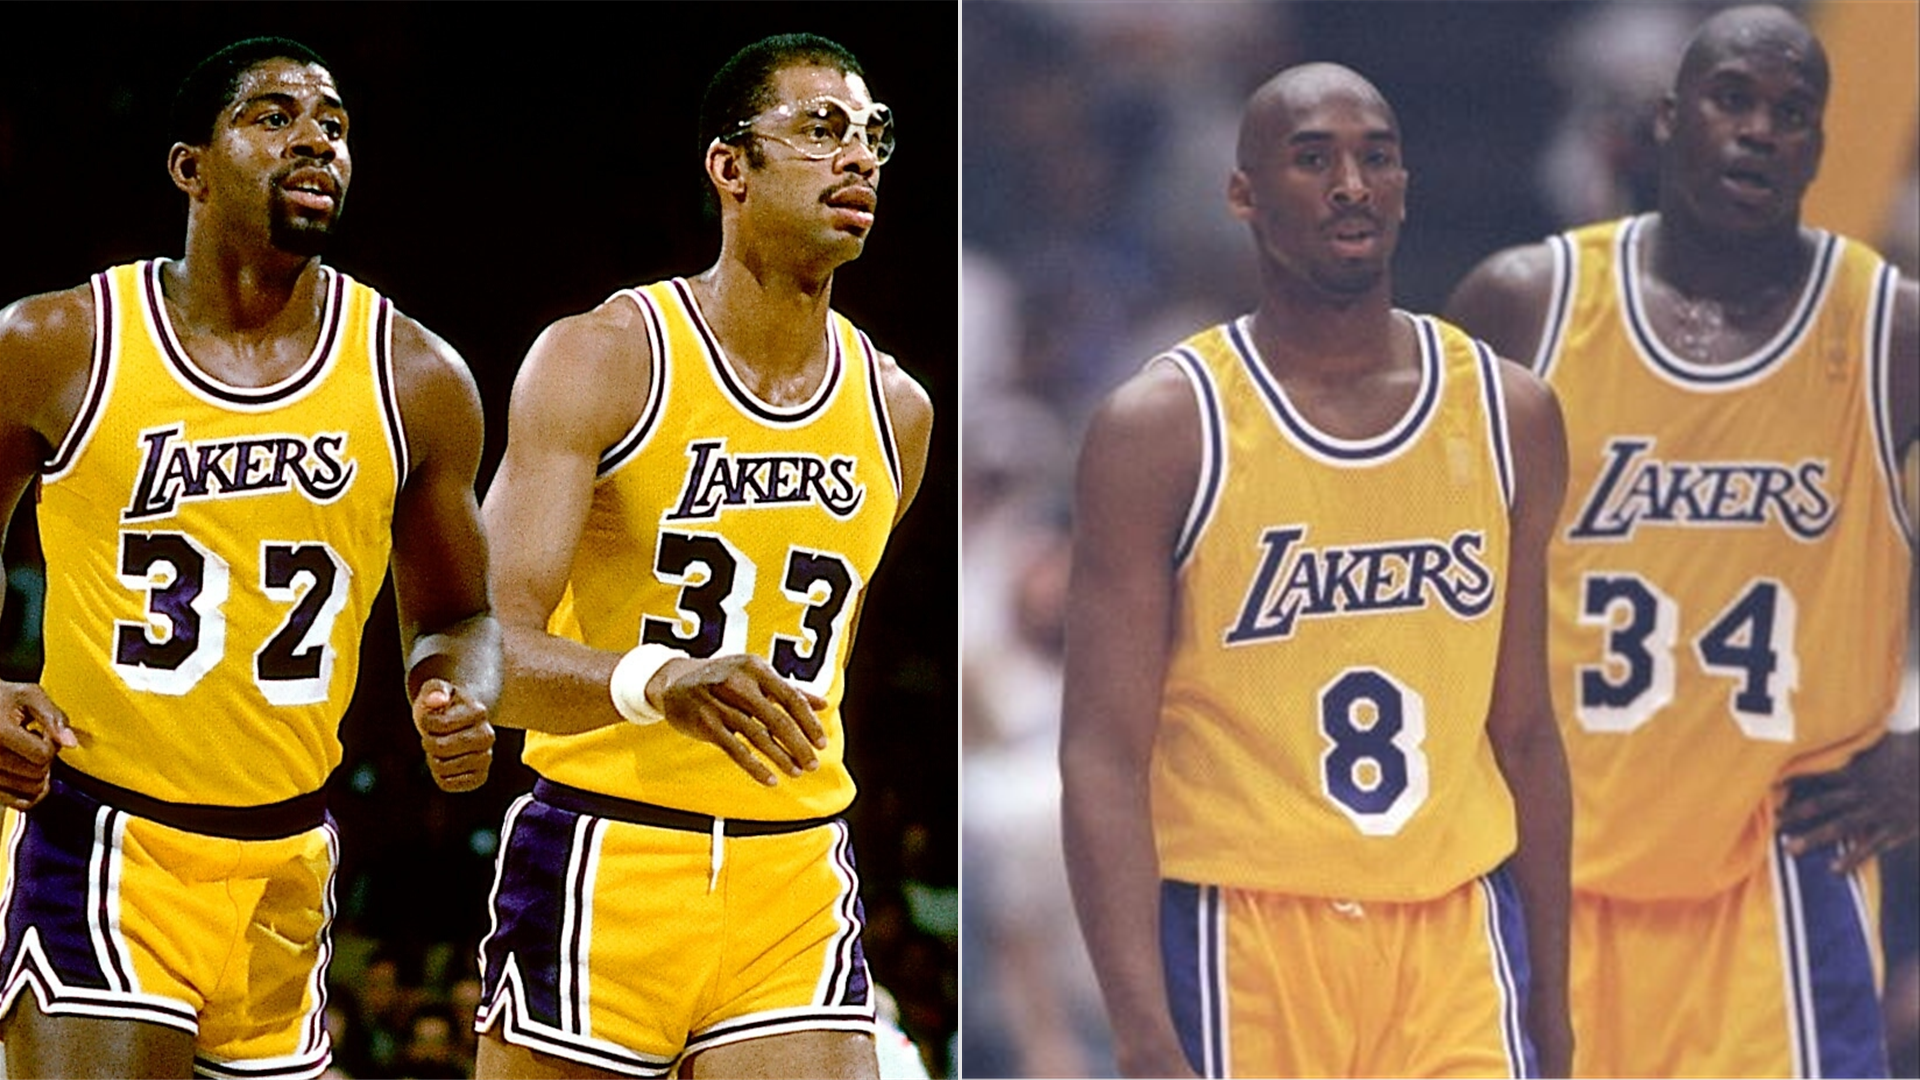 lakers-magic-kareem-shaq-kobe-split-073118-getty-ftr